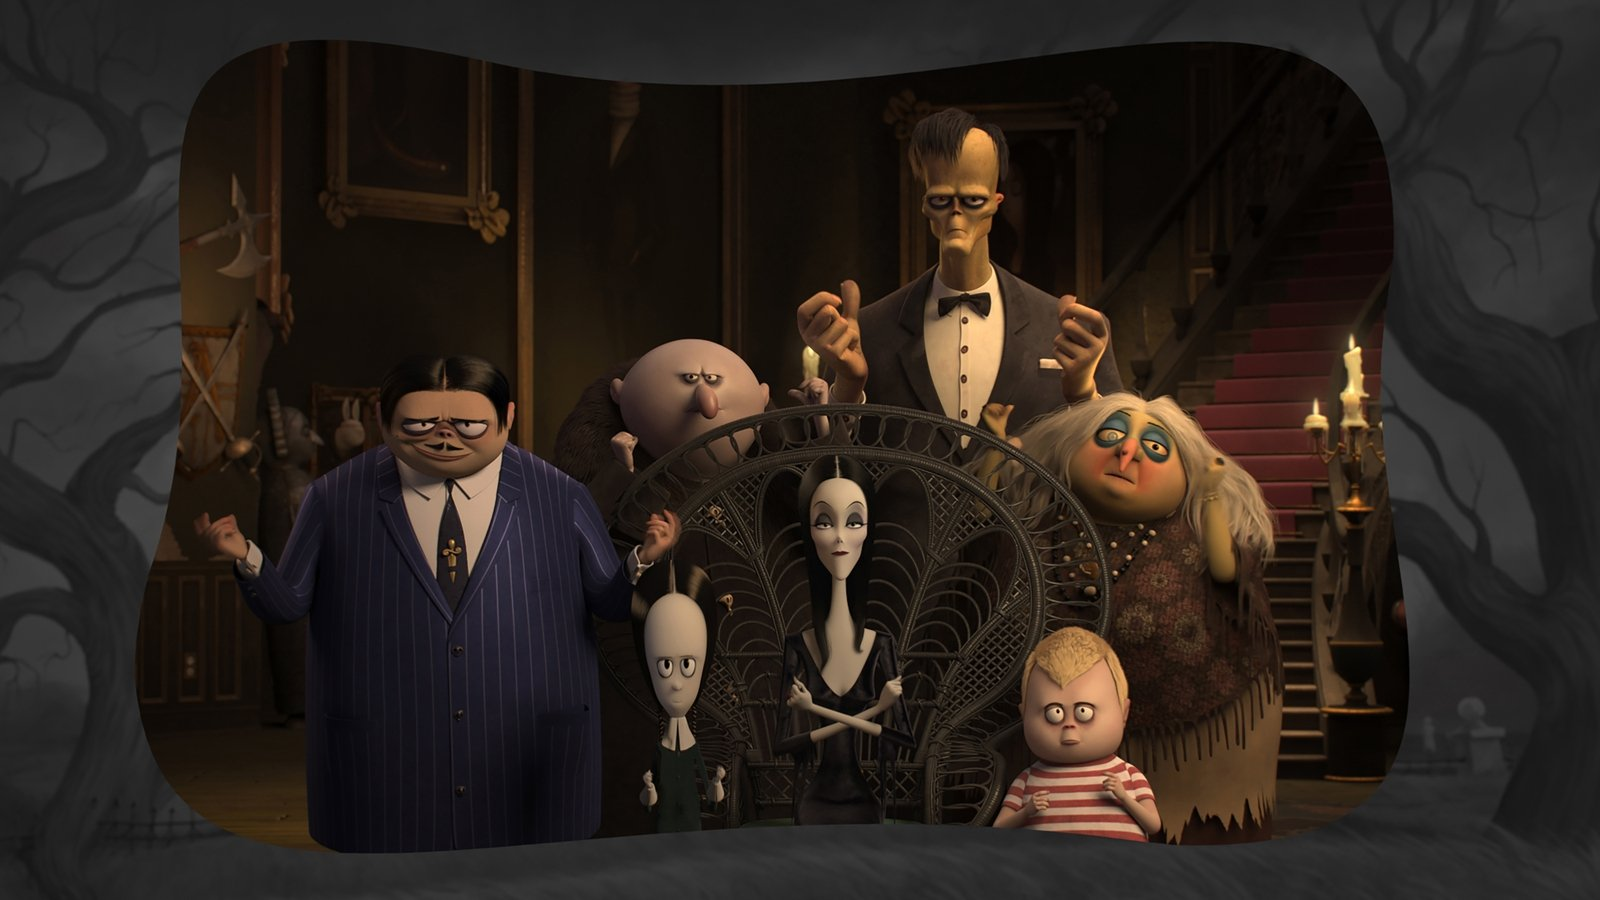 Addams Family Porn the addams family movie review : addams family have their